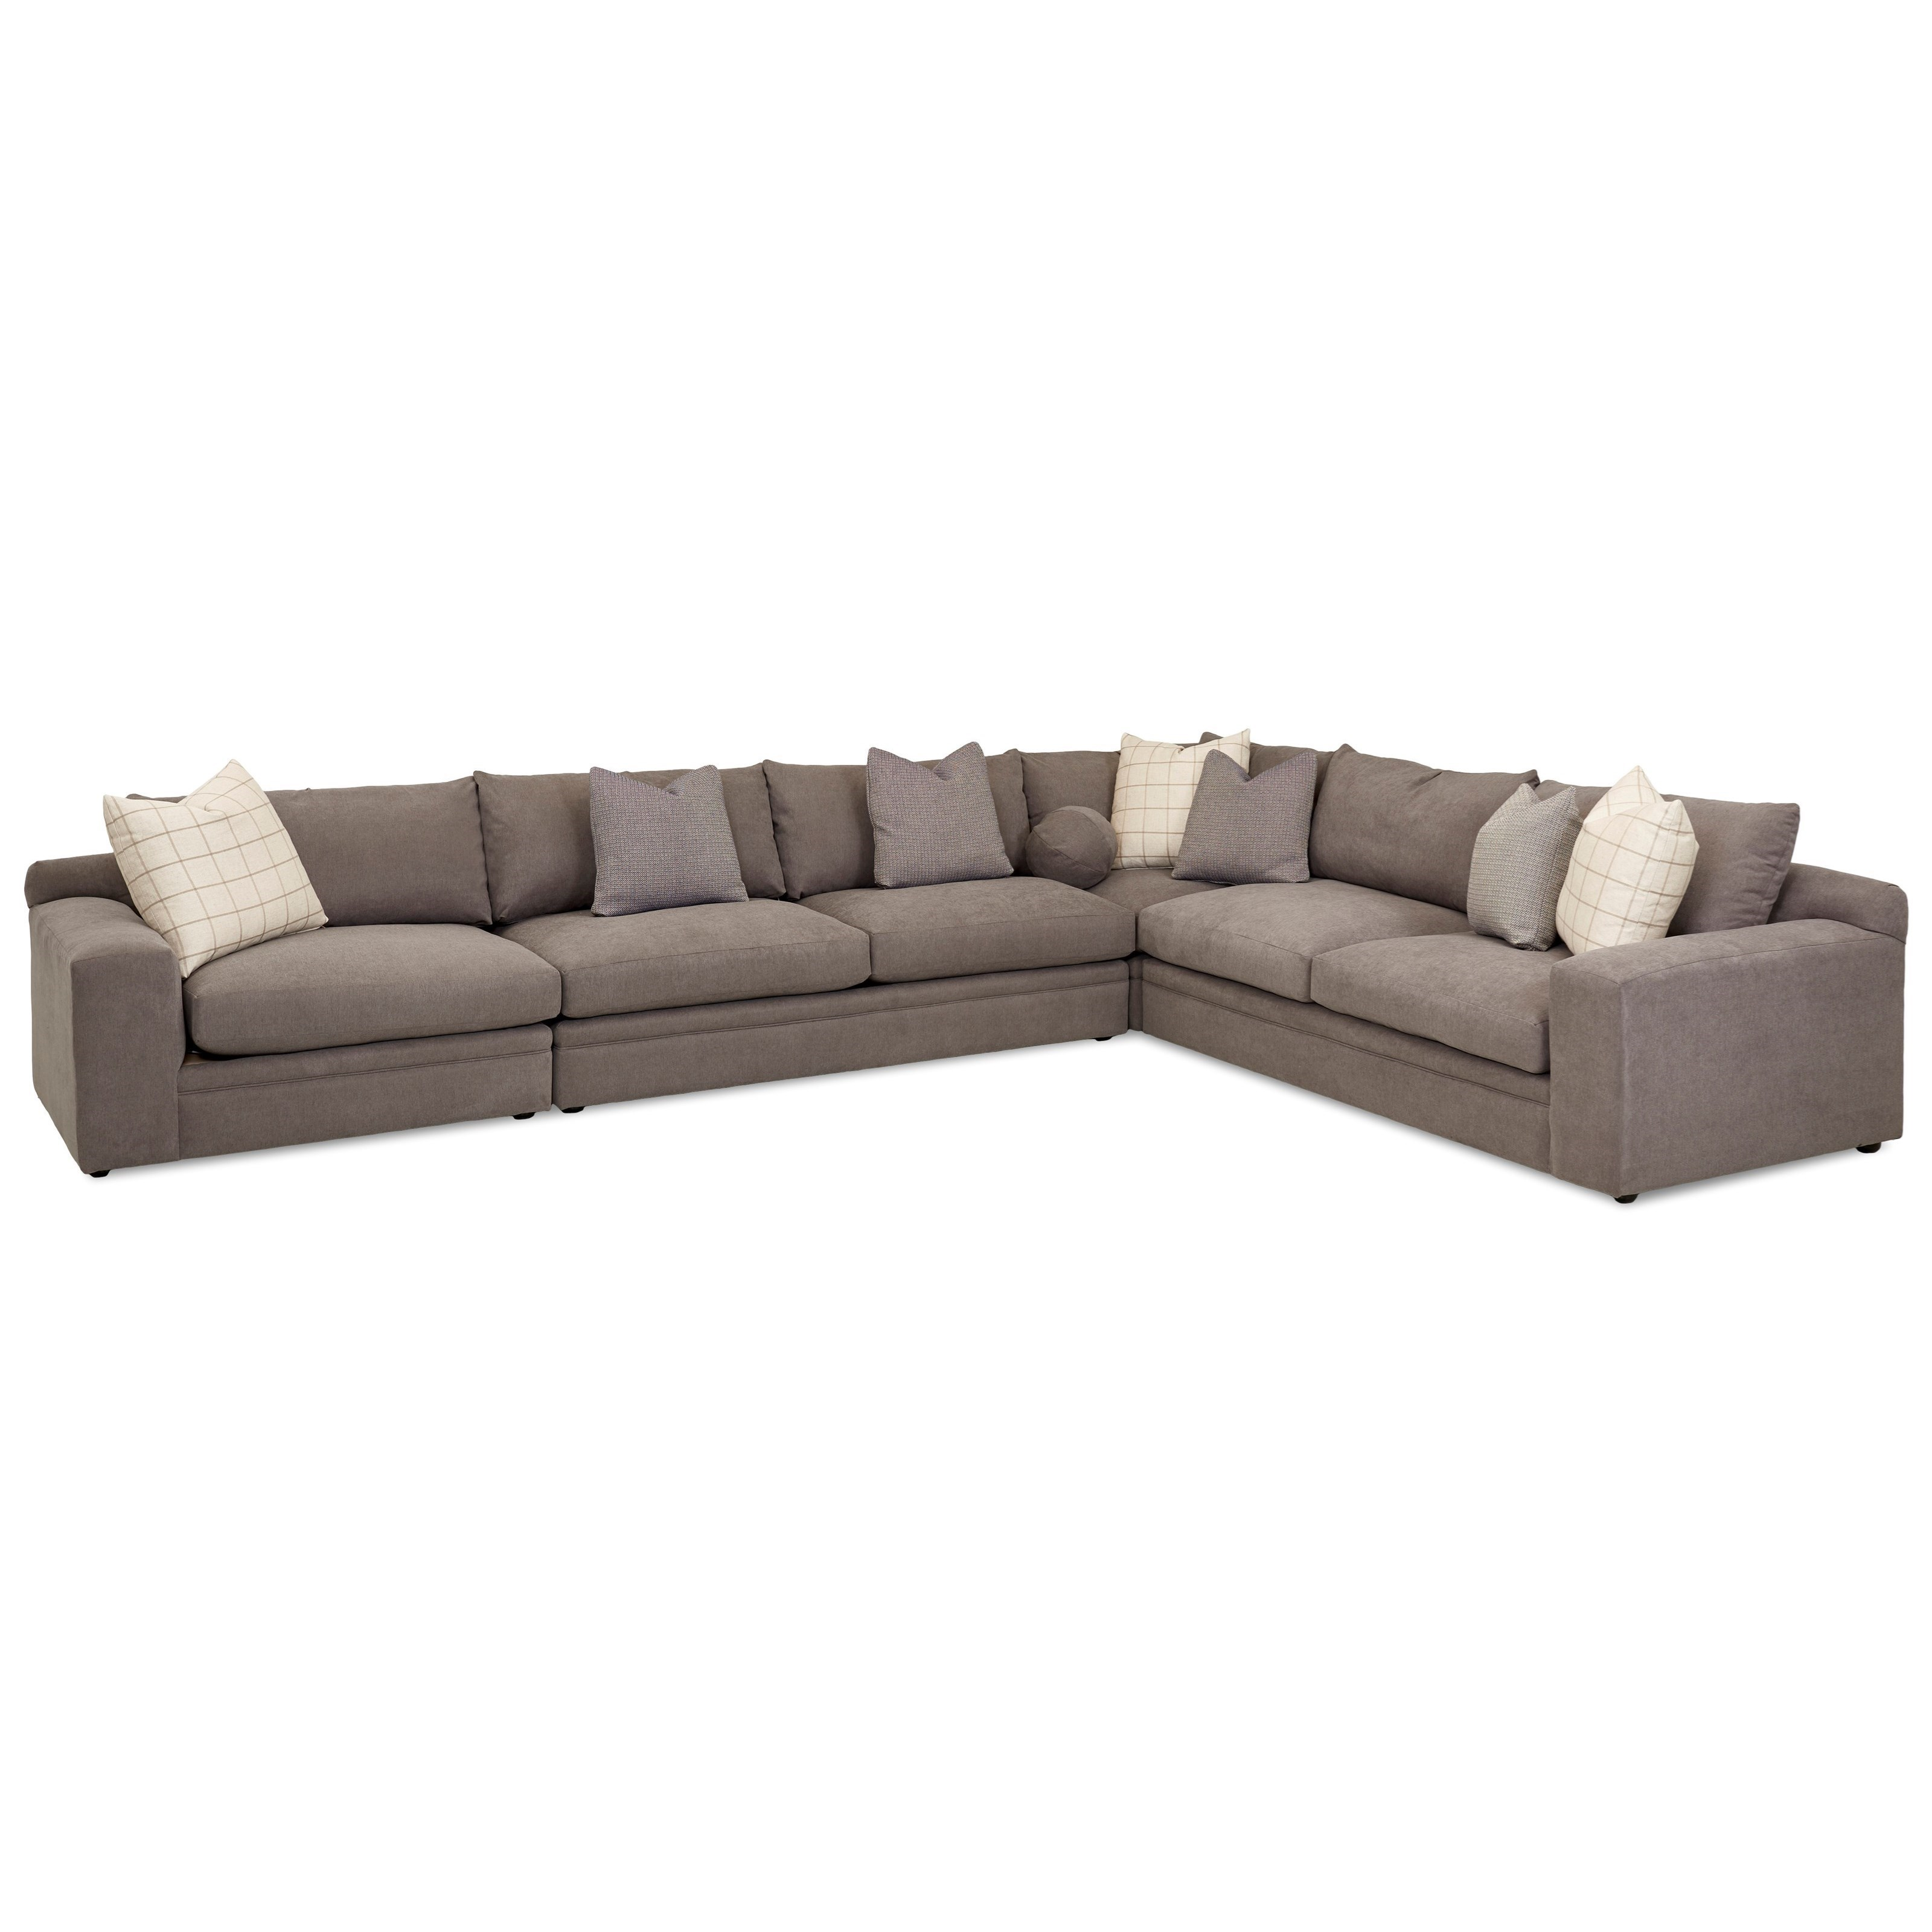 al s chairs and tables used chair covers on ebay klaussner casa mesa casual four piece sectional sofa with laf dunk bright furniture sofas